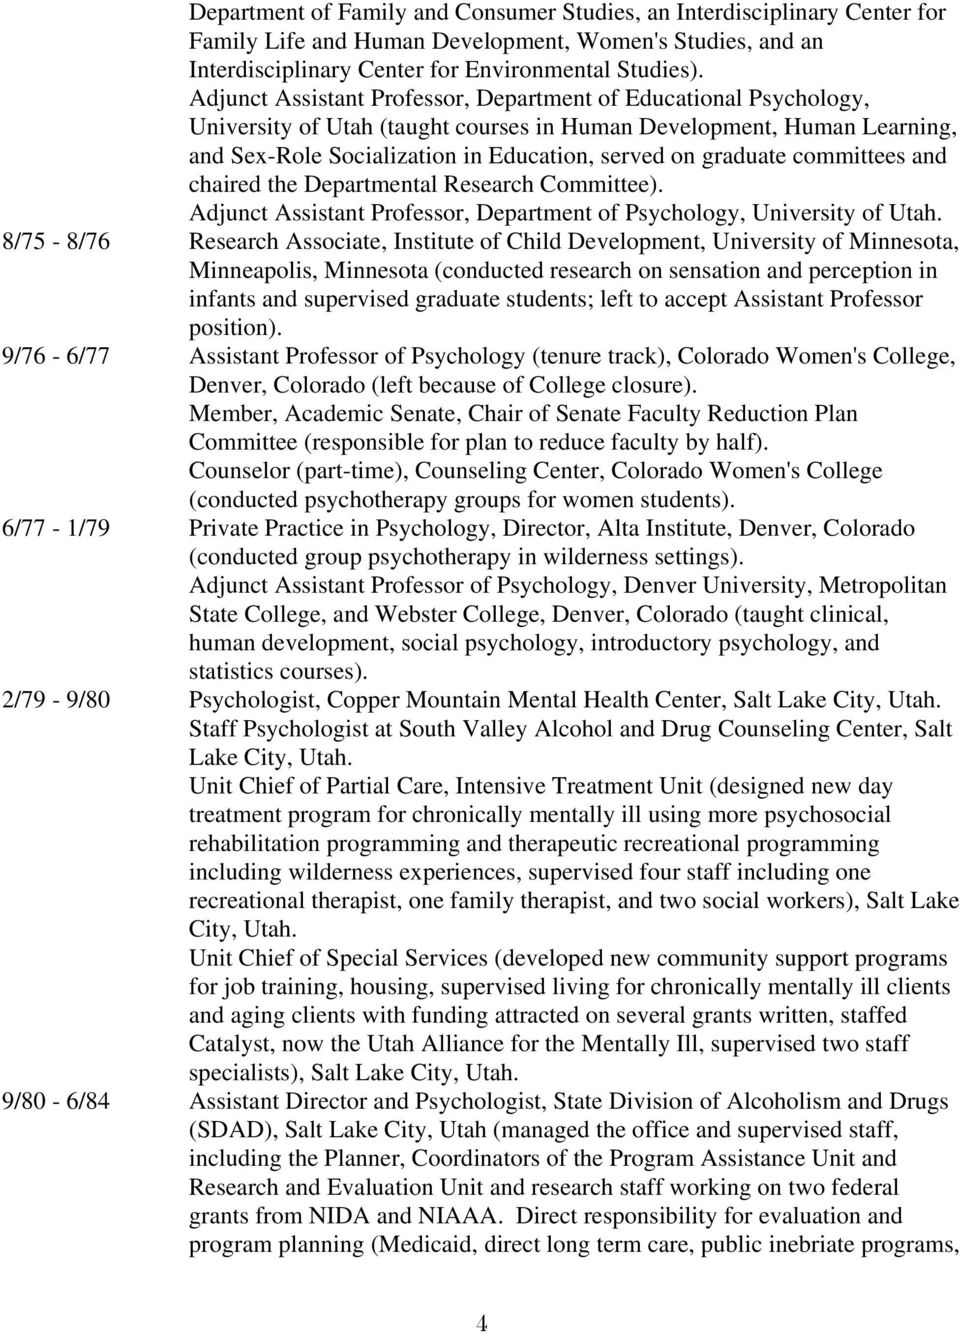 committees and chaired the Departmental Research Committee). Adjunct Assistant Professor, Department of Psychology, University of Utah.